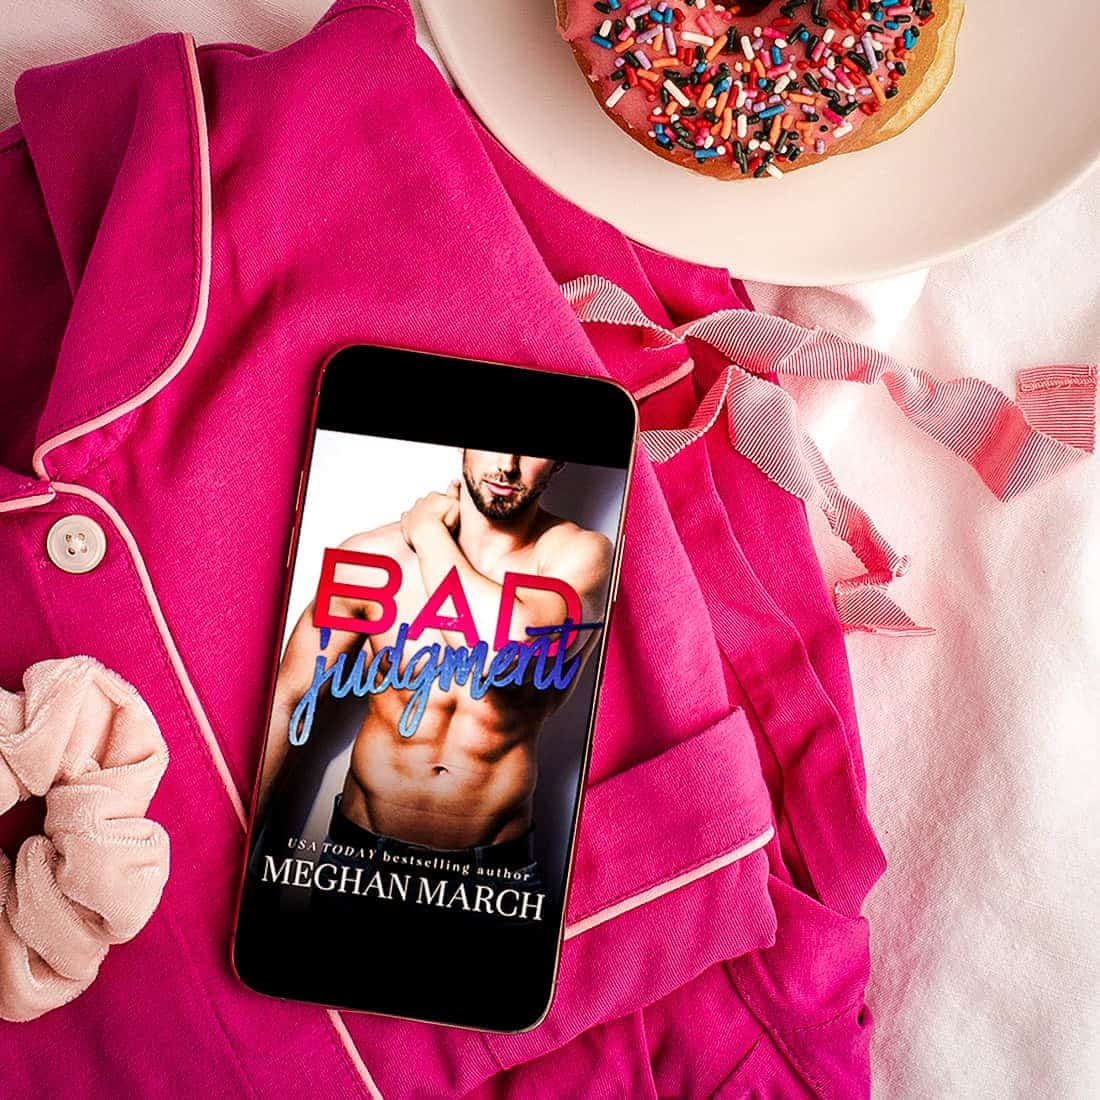 Bad Judgment by Meghan March is a quick and steamy enemies-to-lovers romance with loveable characters, a cat-and-mouse chase, a few twists, and lots of heart.